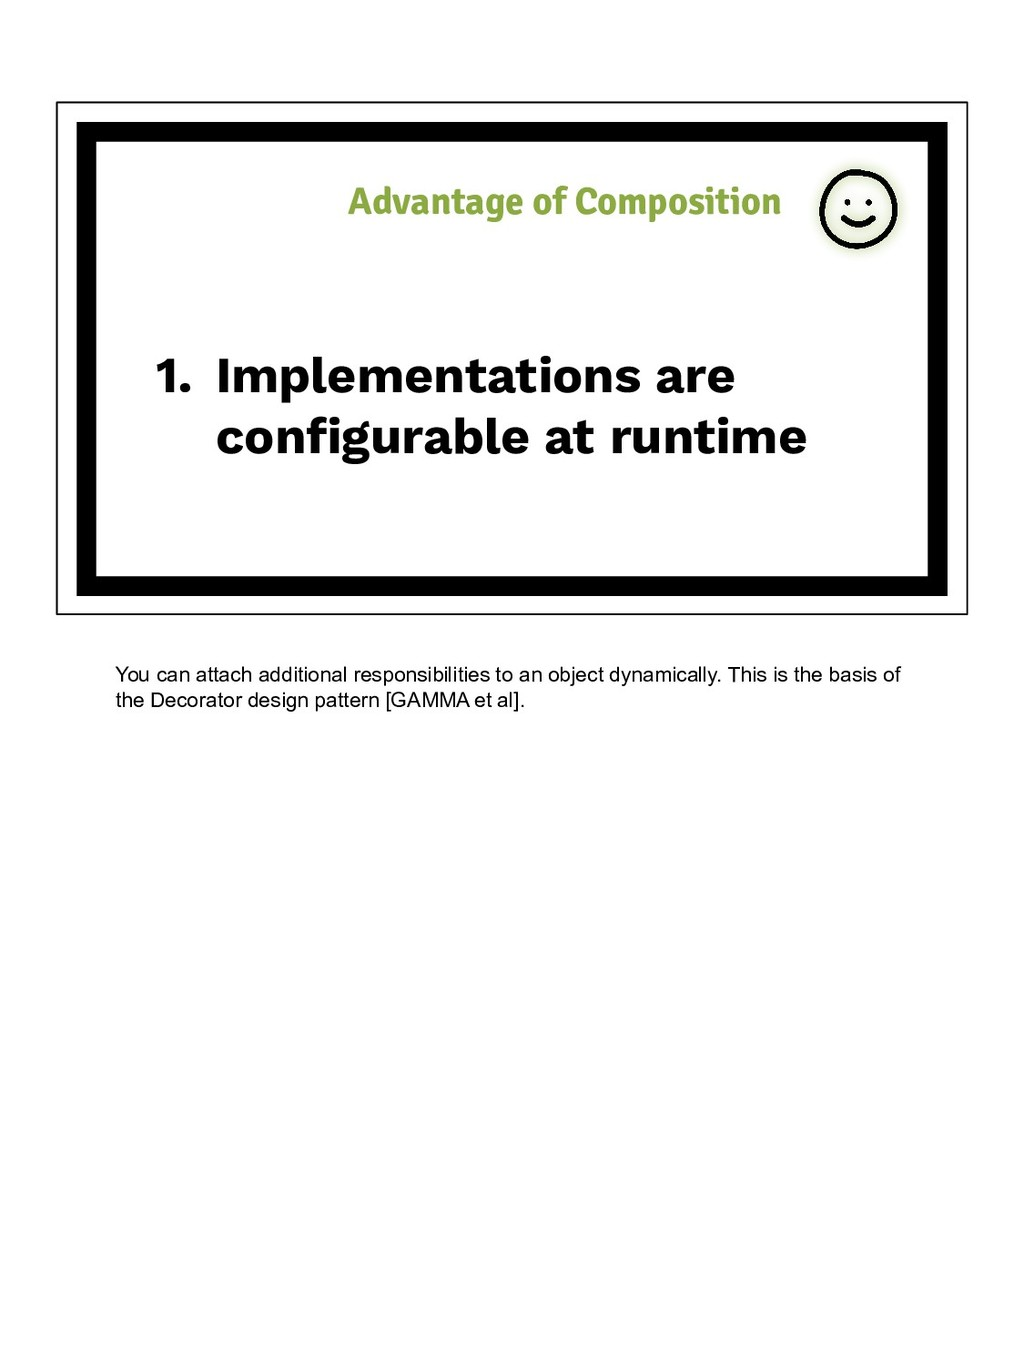 1. Implementations are configurable at runtime A...